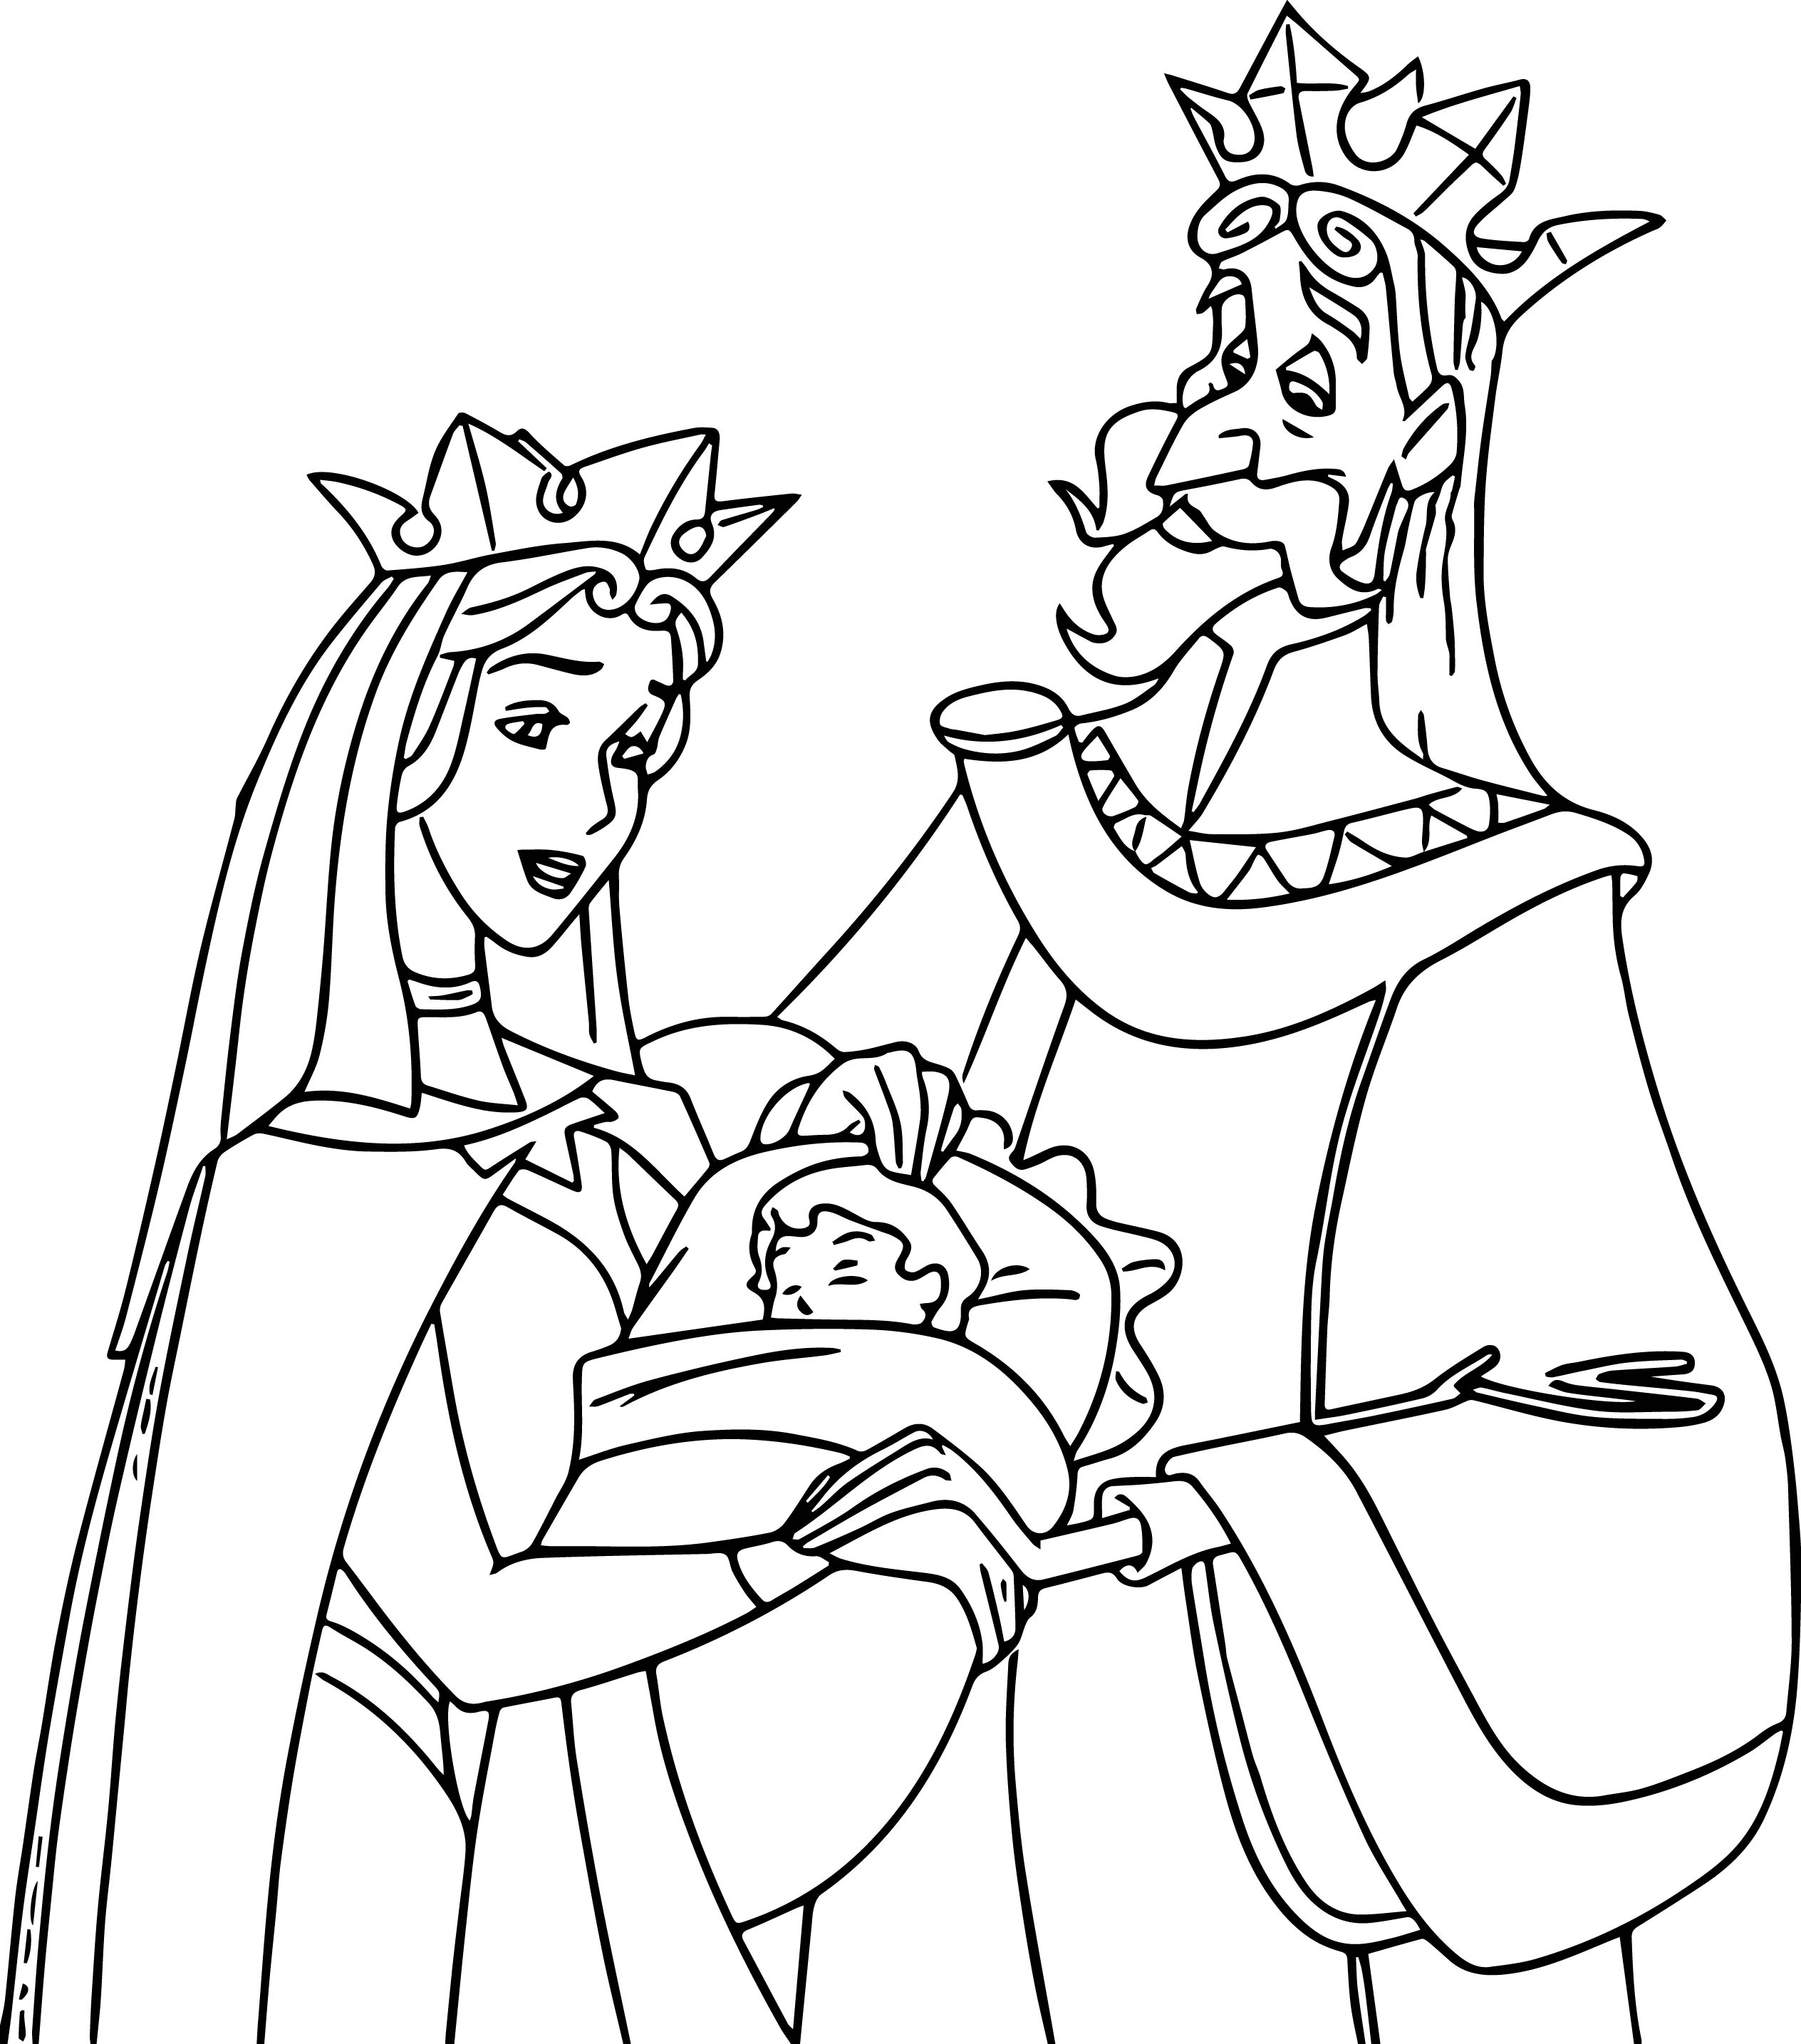 Sleeping beauty baby his mom and dad coloring page for Mom and baby coloring pages